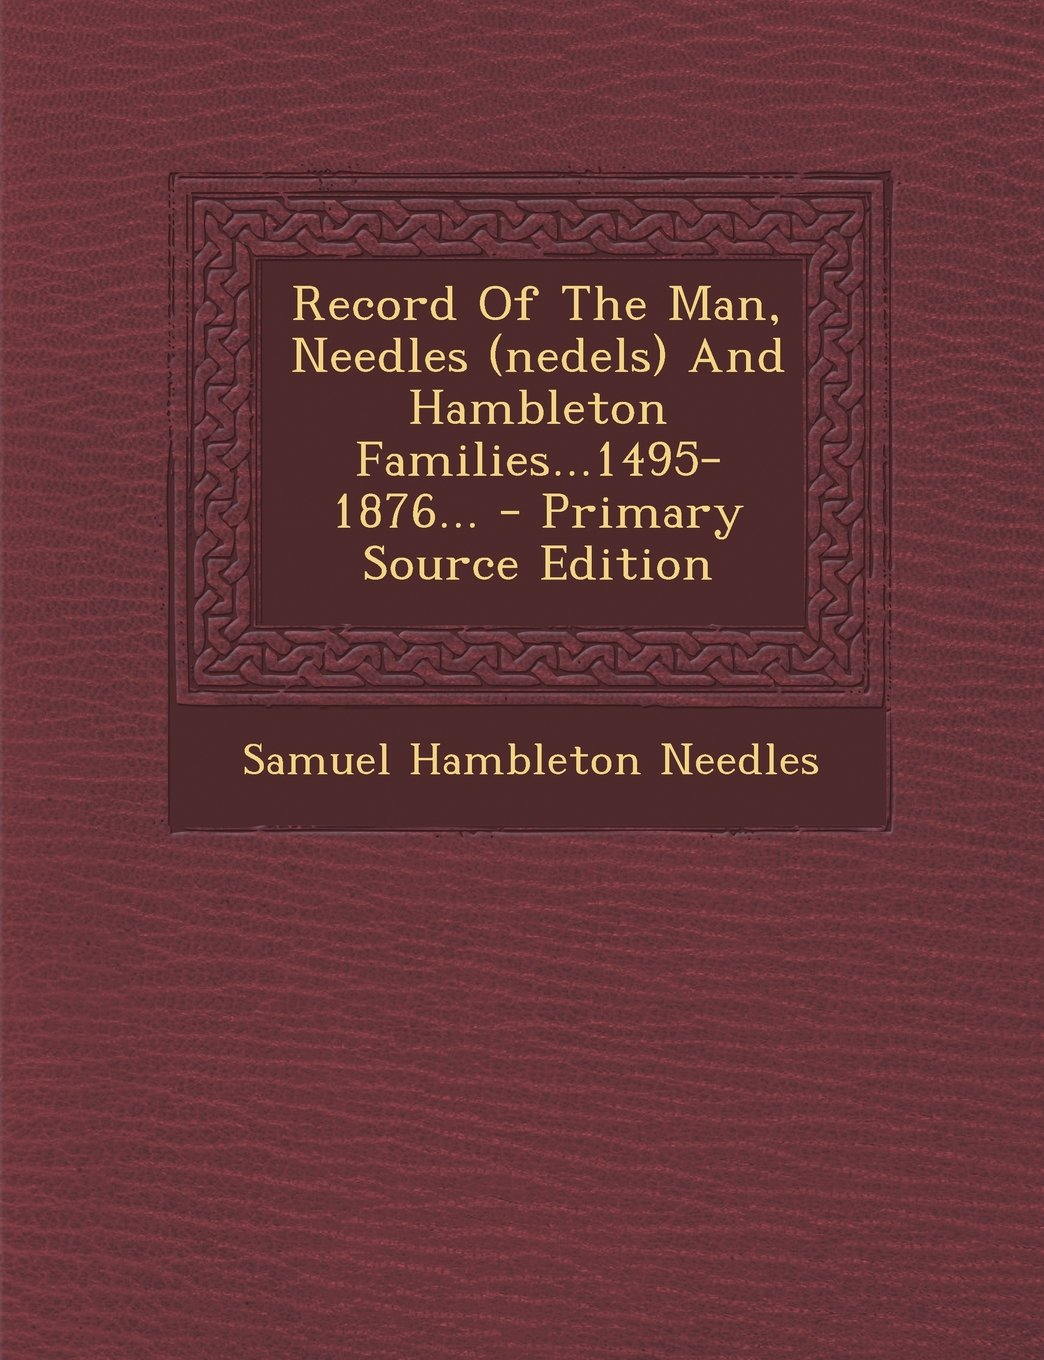 Record Of The Man, Needles (nedels) And Hambleton Families...1495-1876... PDF